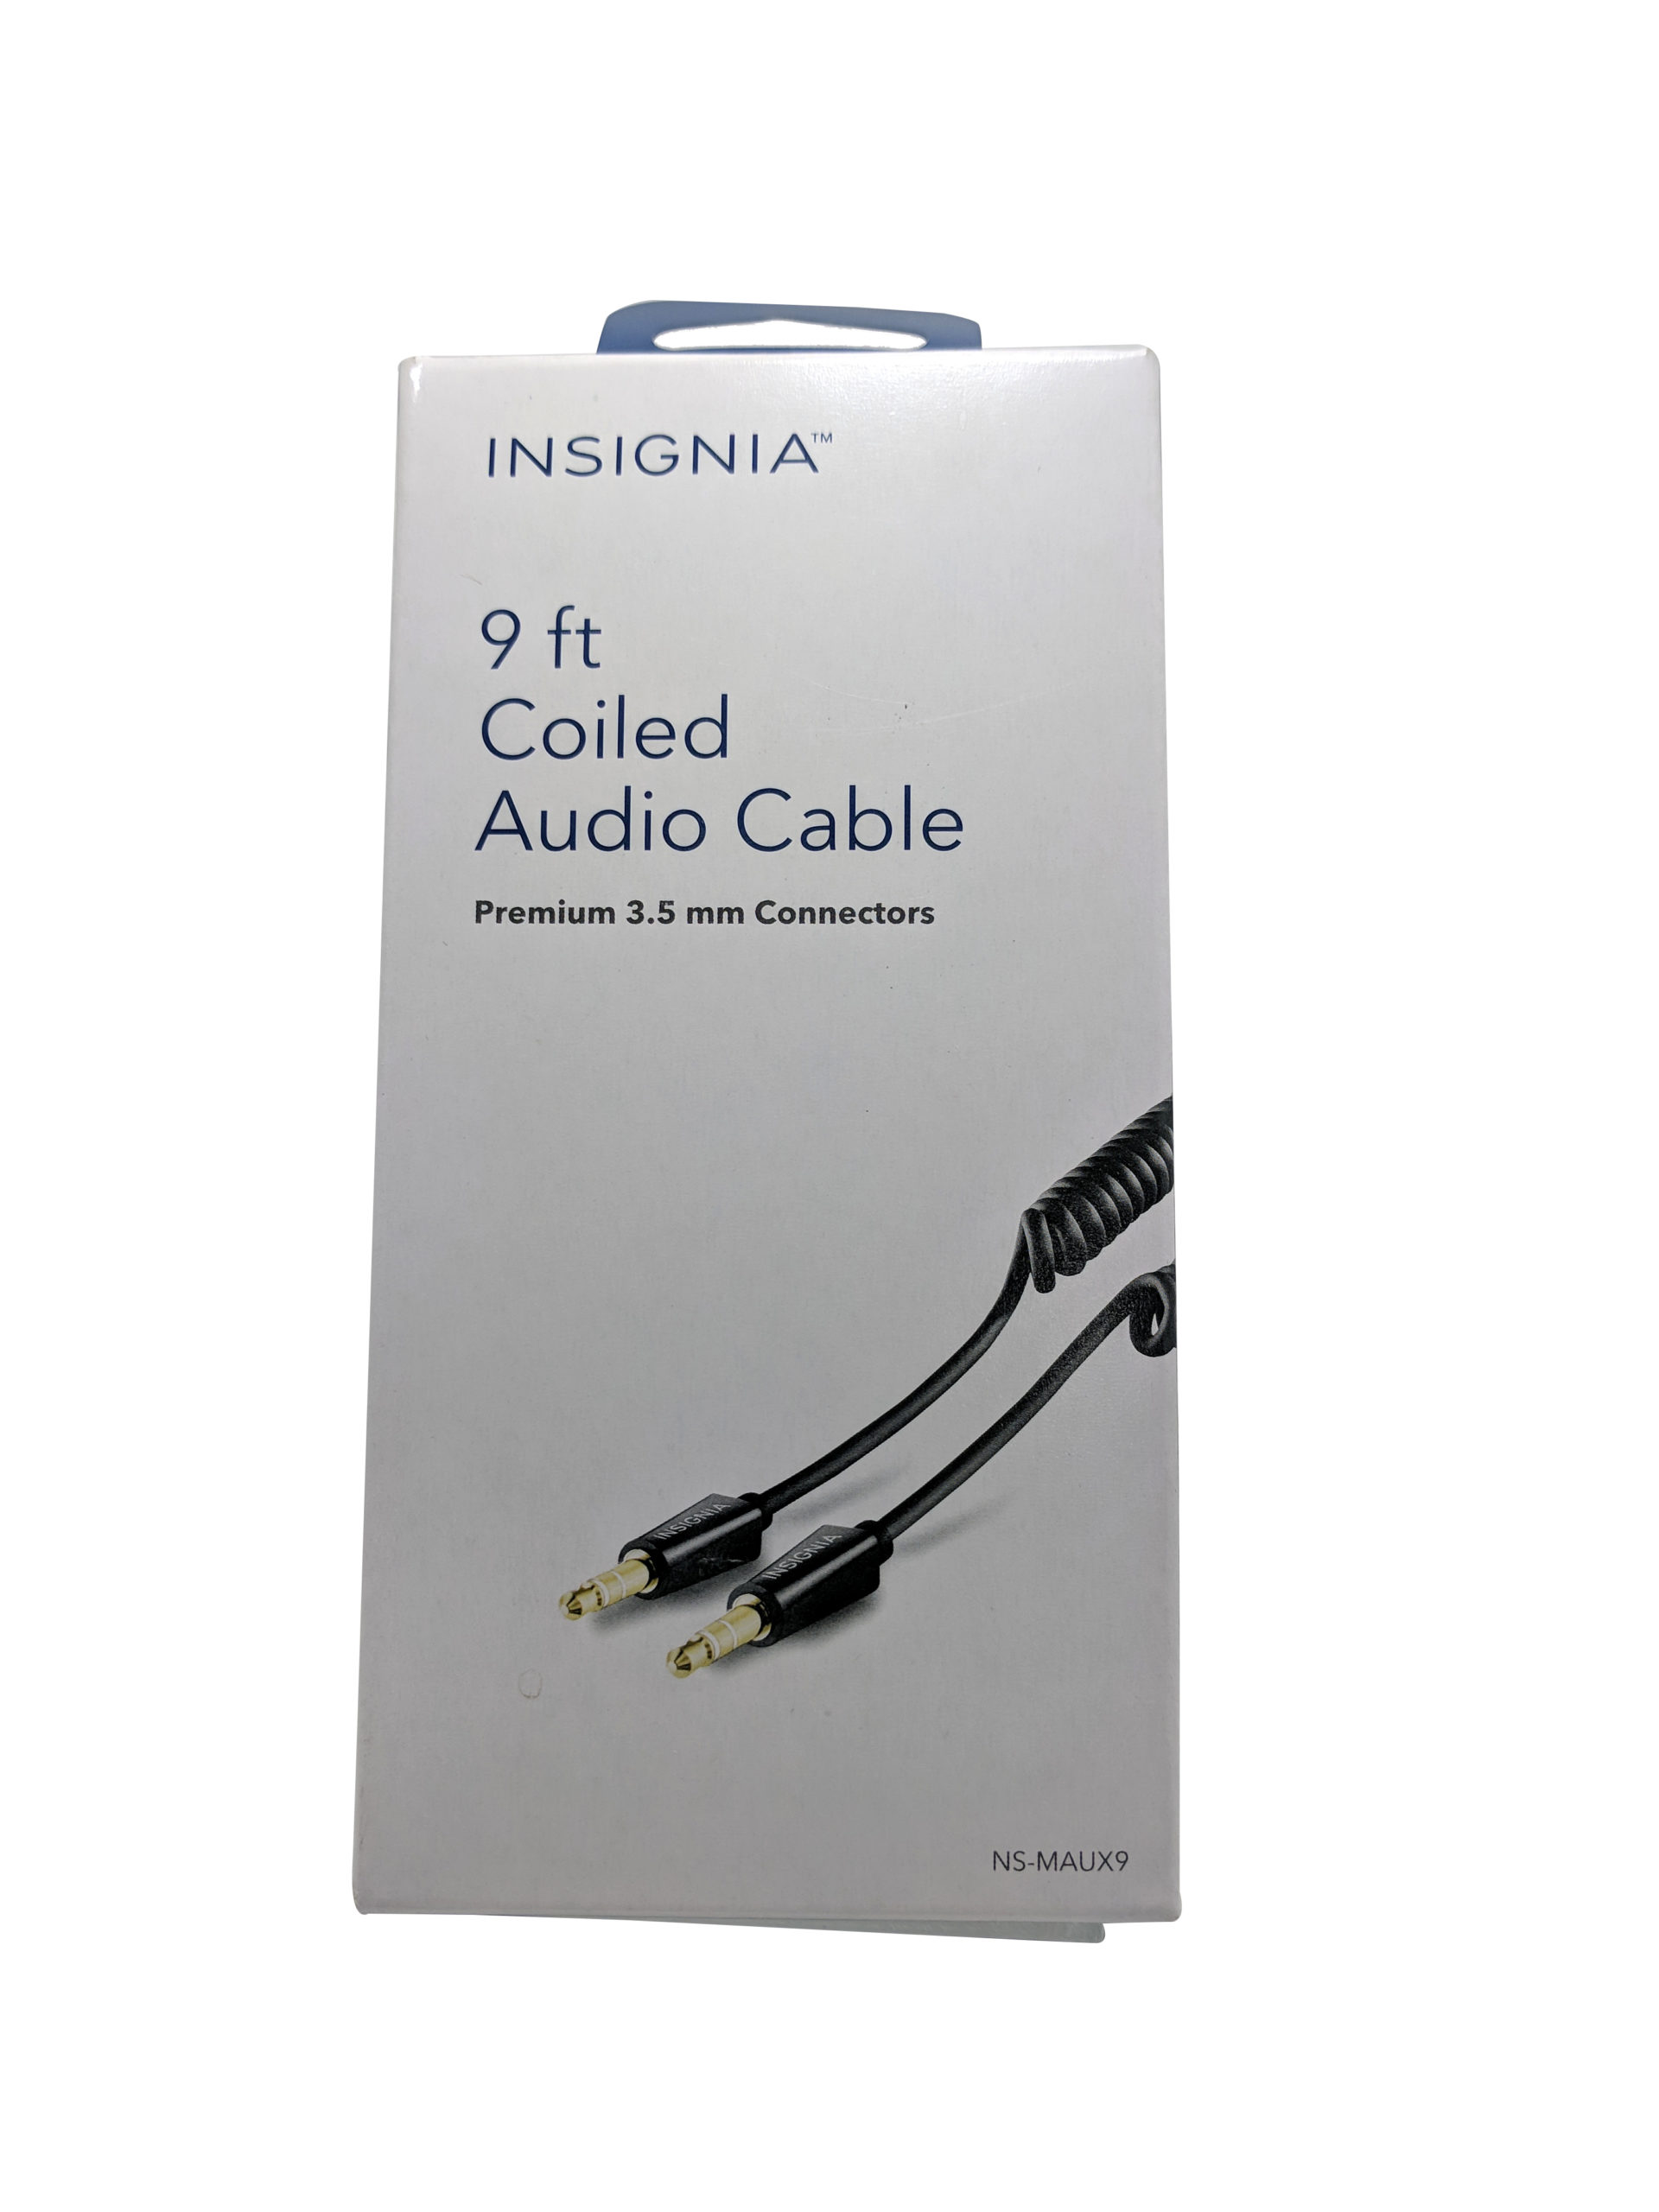 Insignia 9ft Coiled Audio Cable